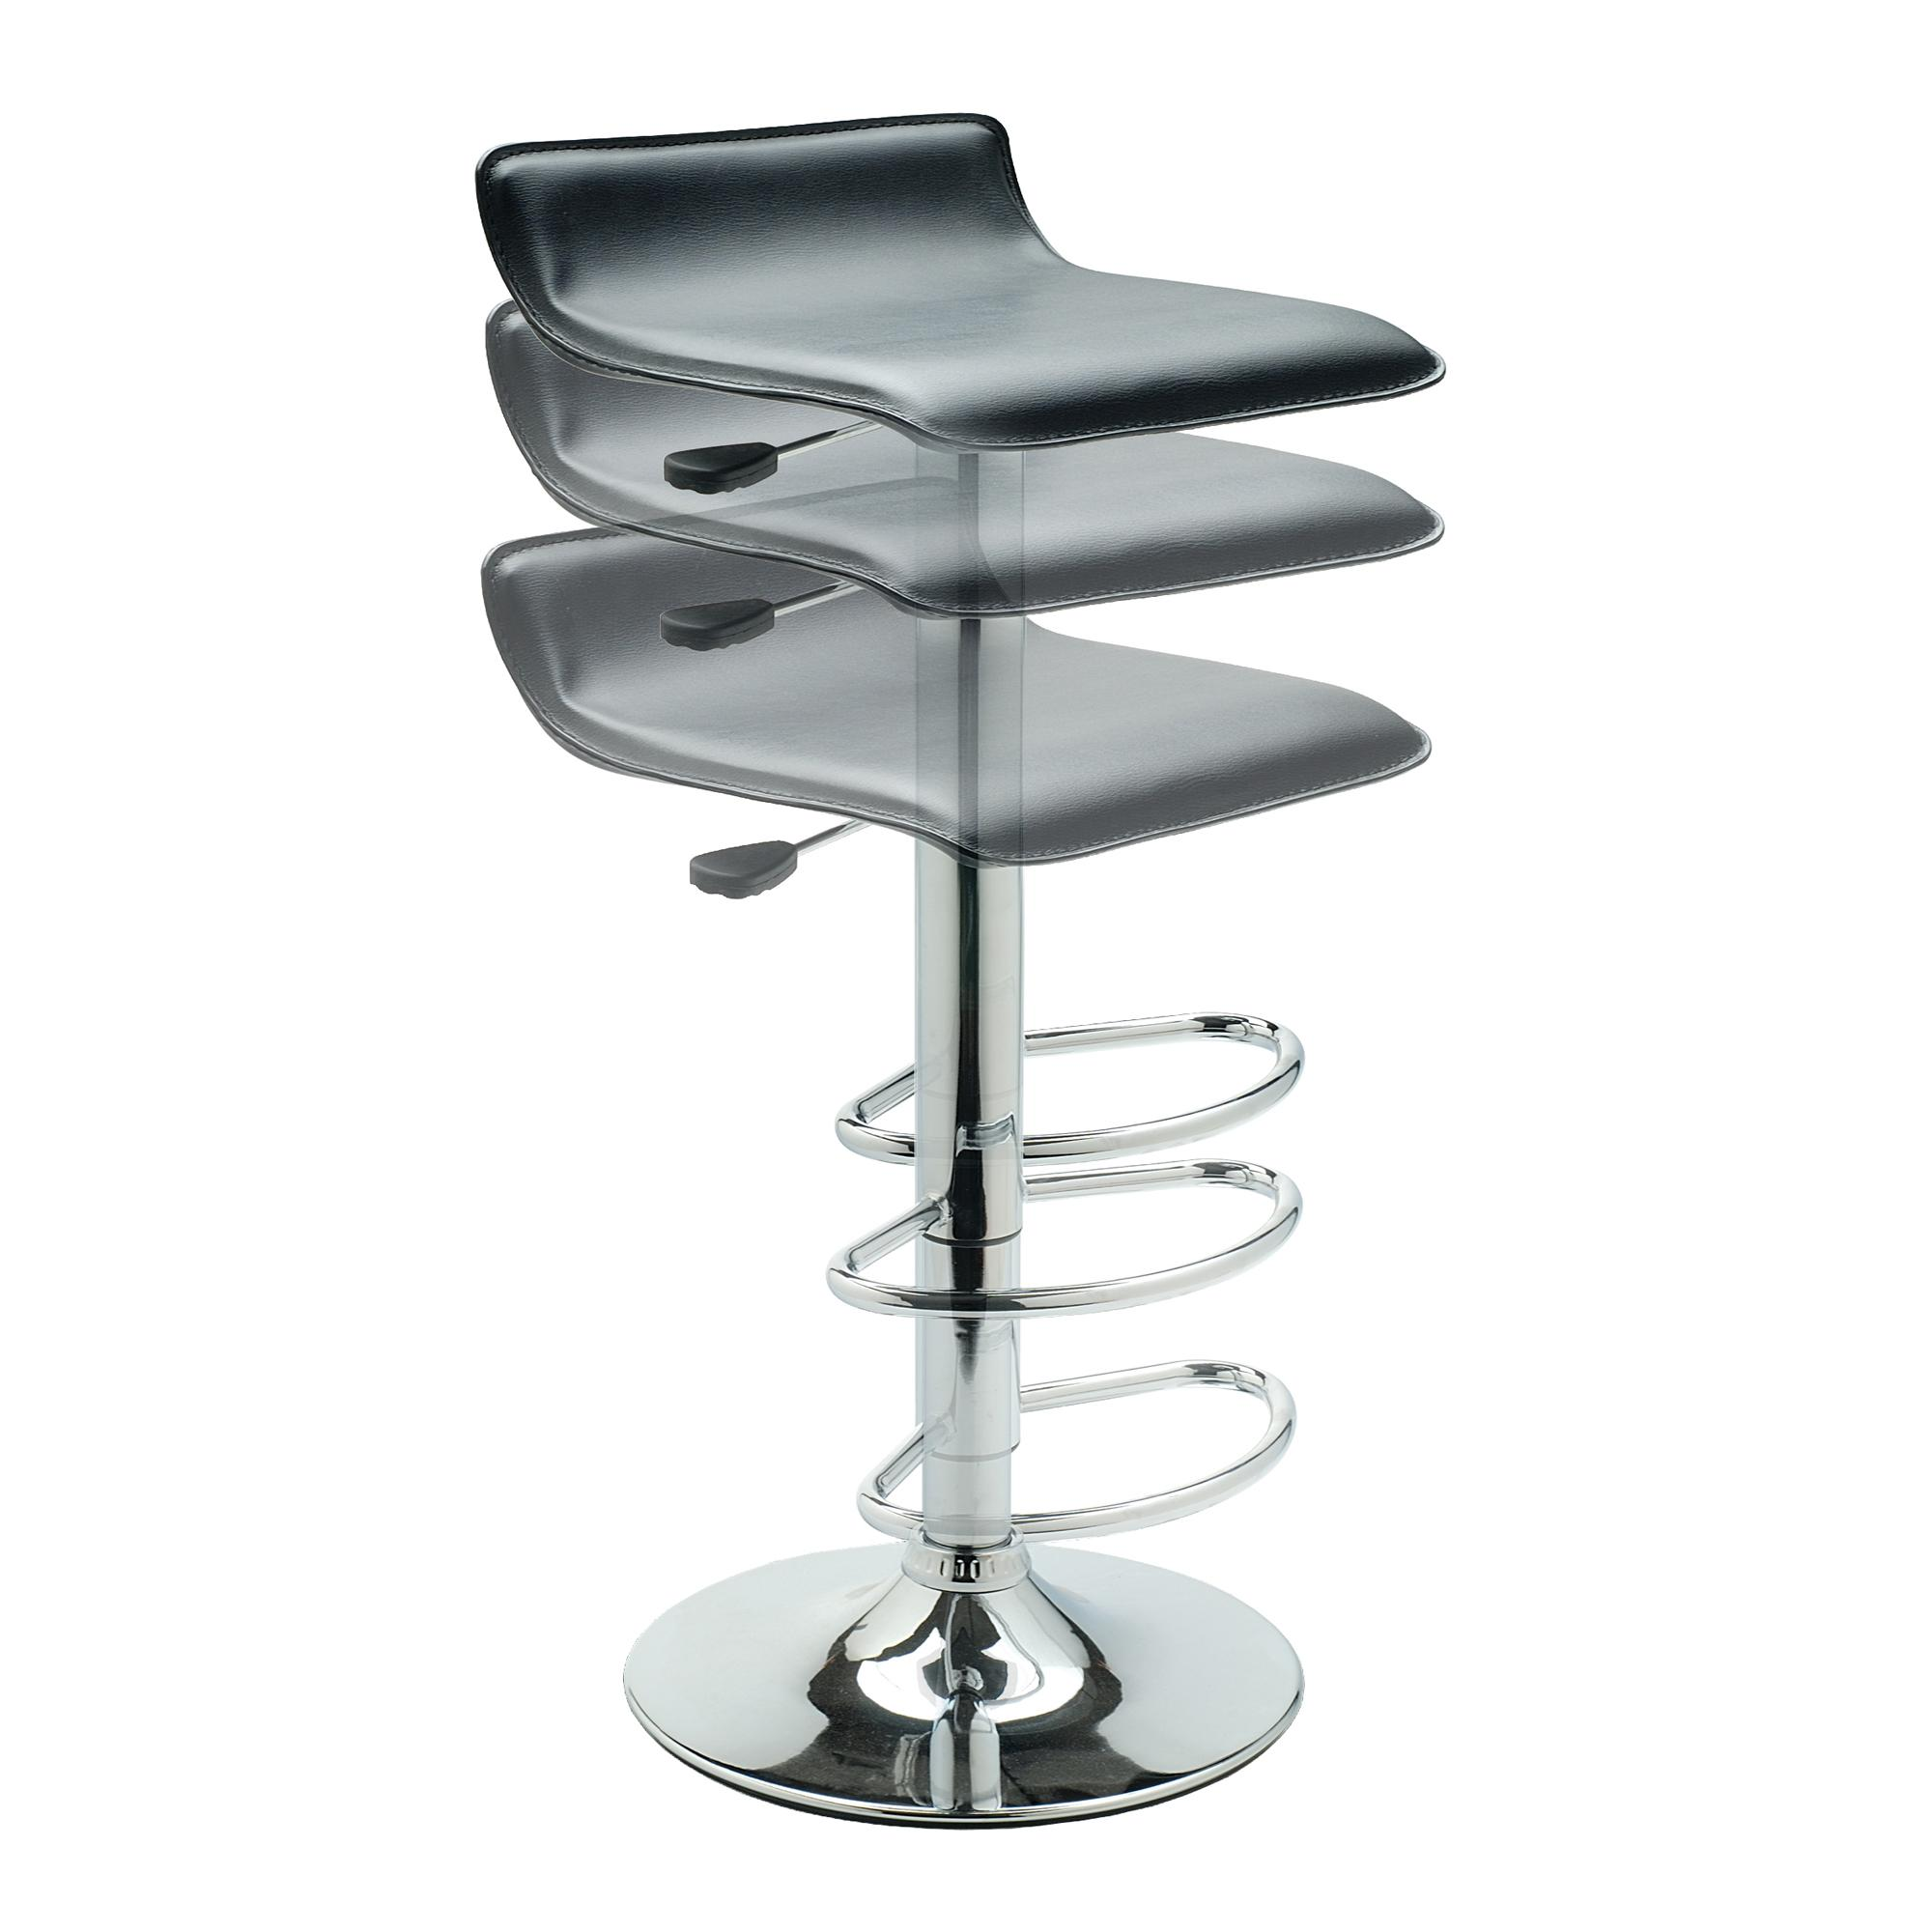 View larger  sc 1 st  Amazon.com & Amazon.com: Winsome Spectrum ABS Airlift Swivel Stool Faux ... islam-shia.org